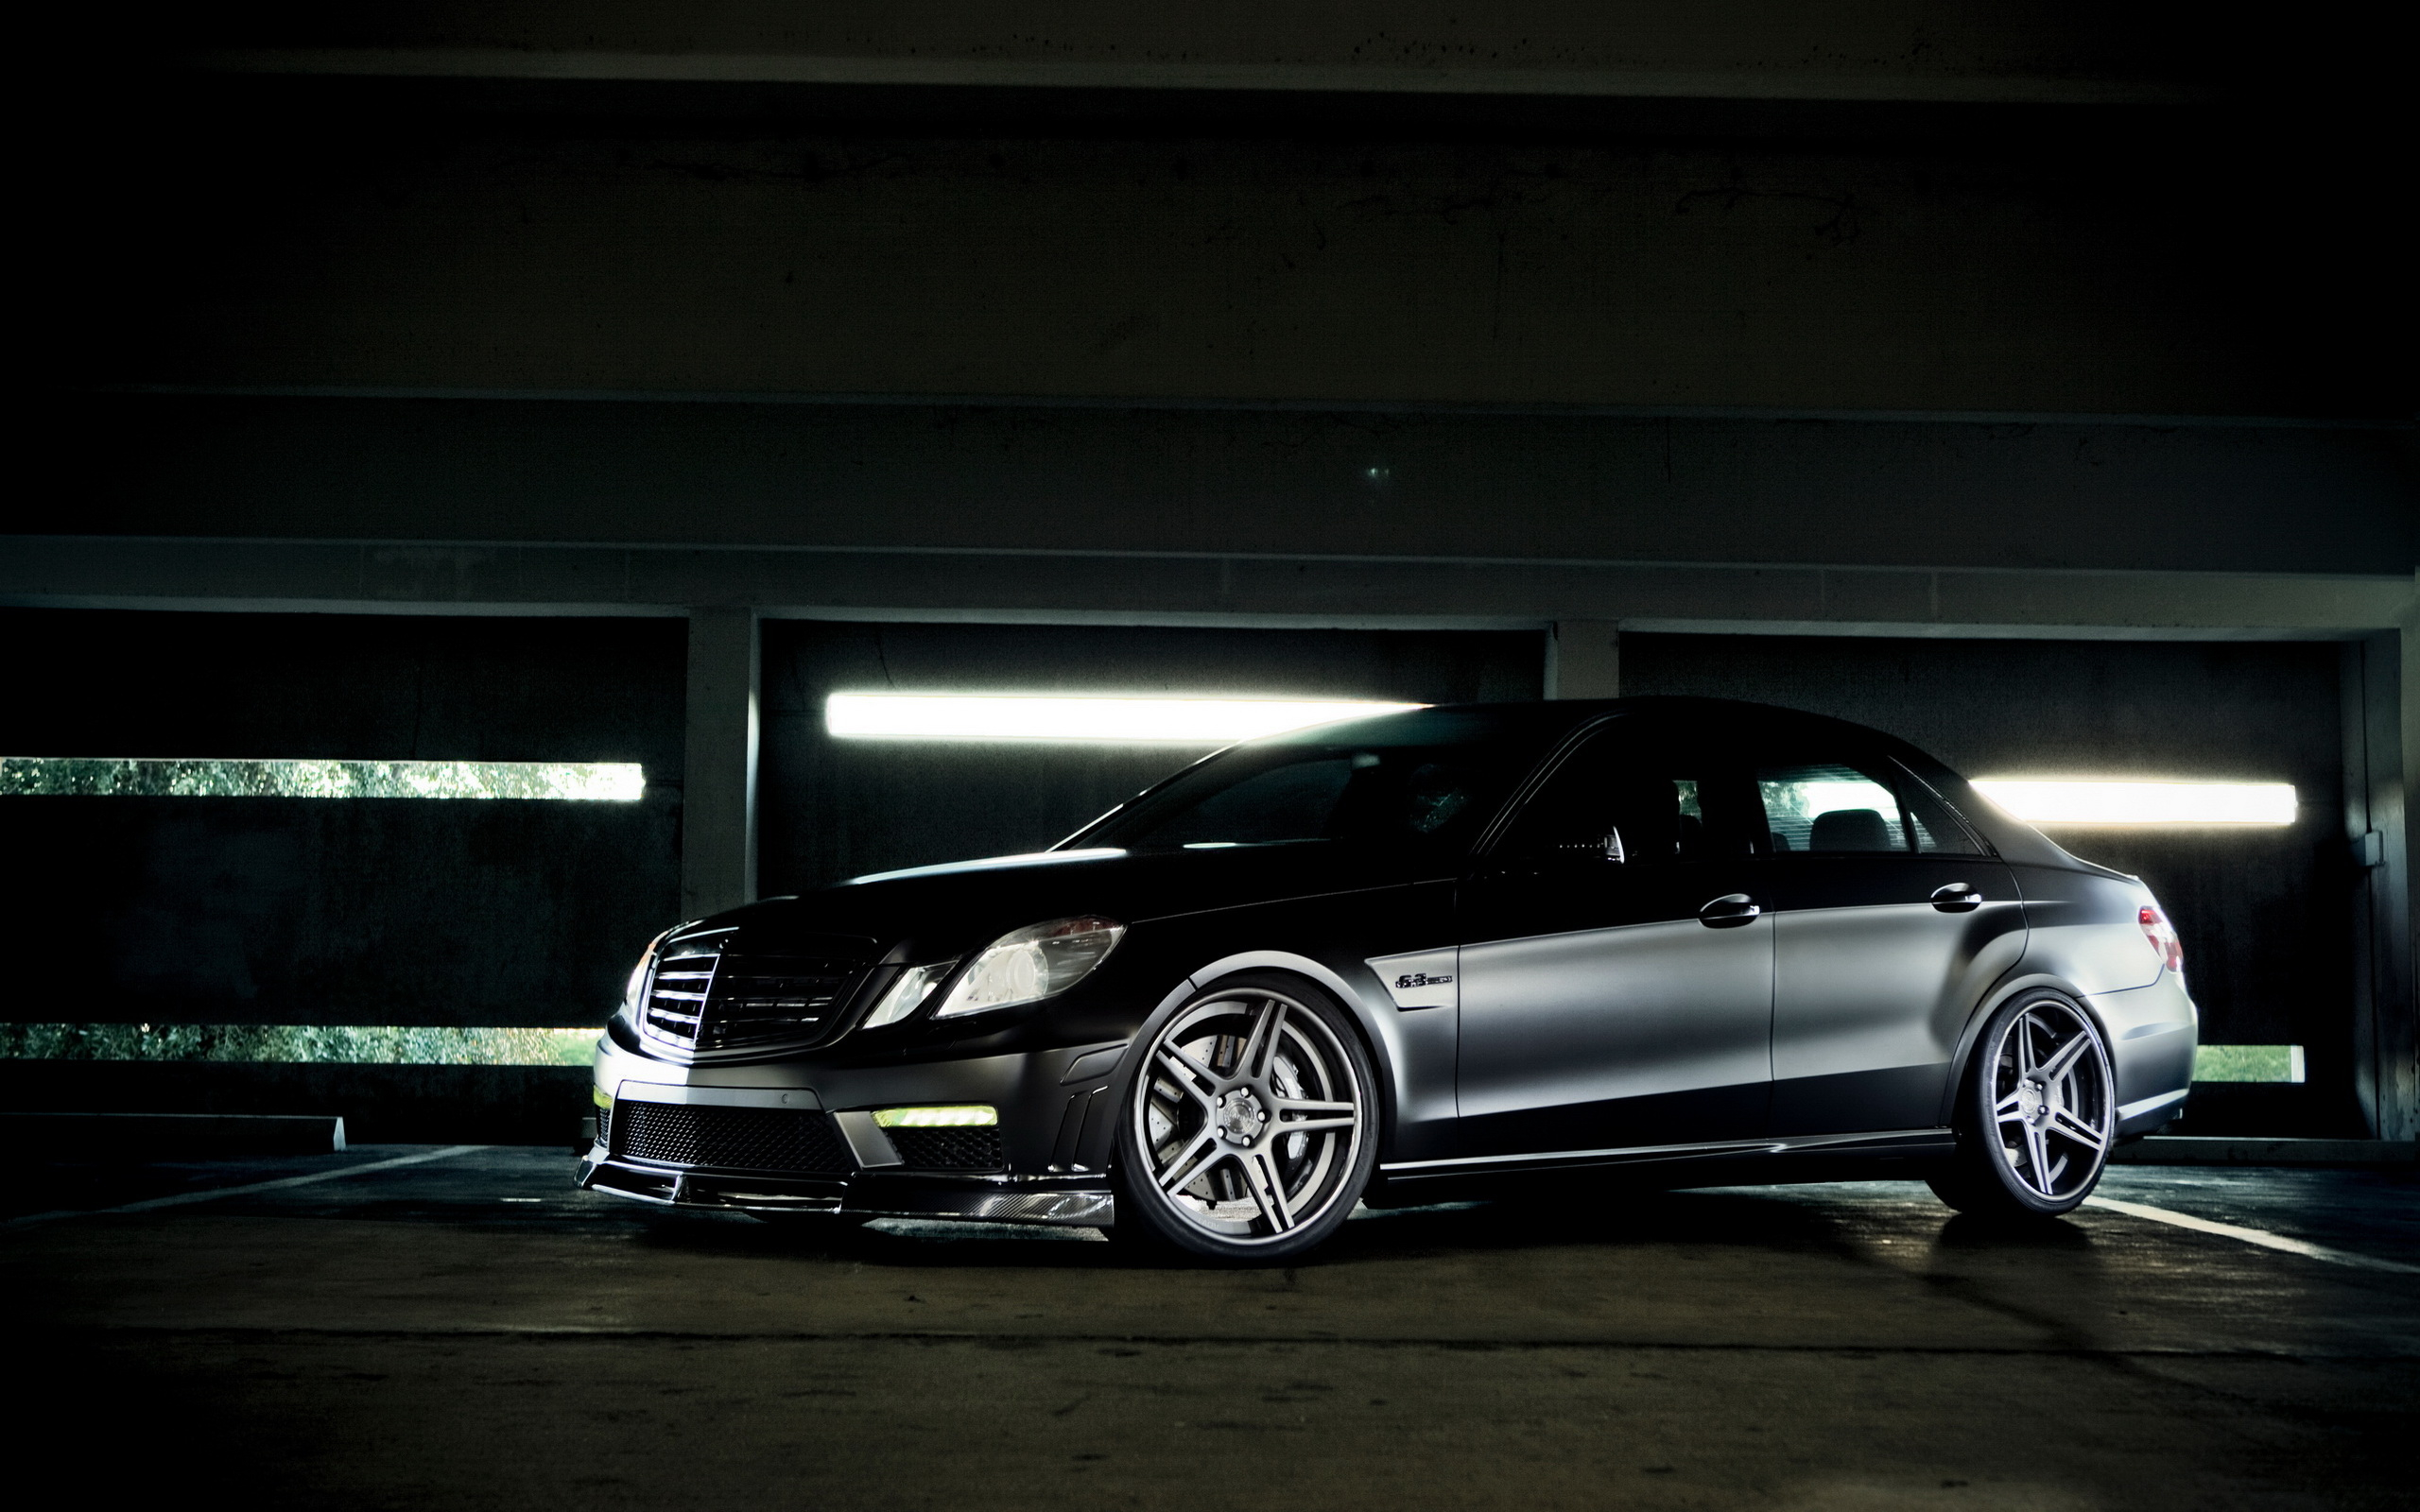 Mercedes Benz E63 AMG wallpapers and images   wallpapers pictures 2560x1600